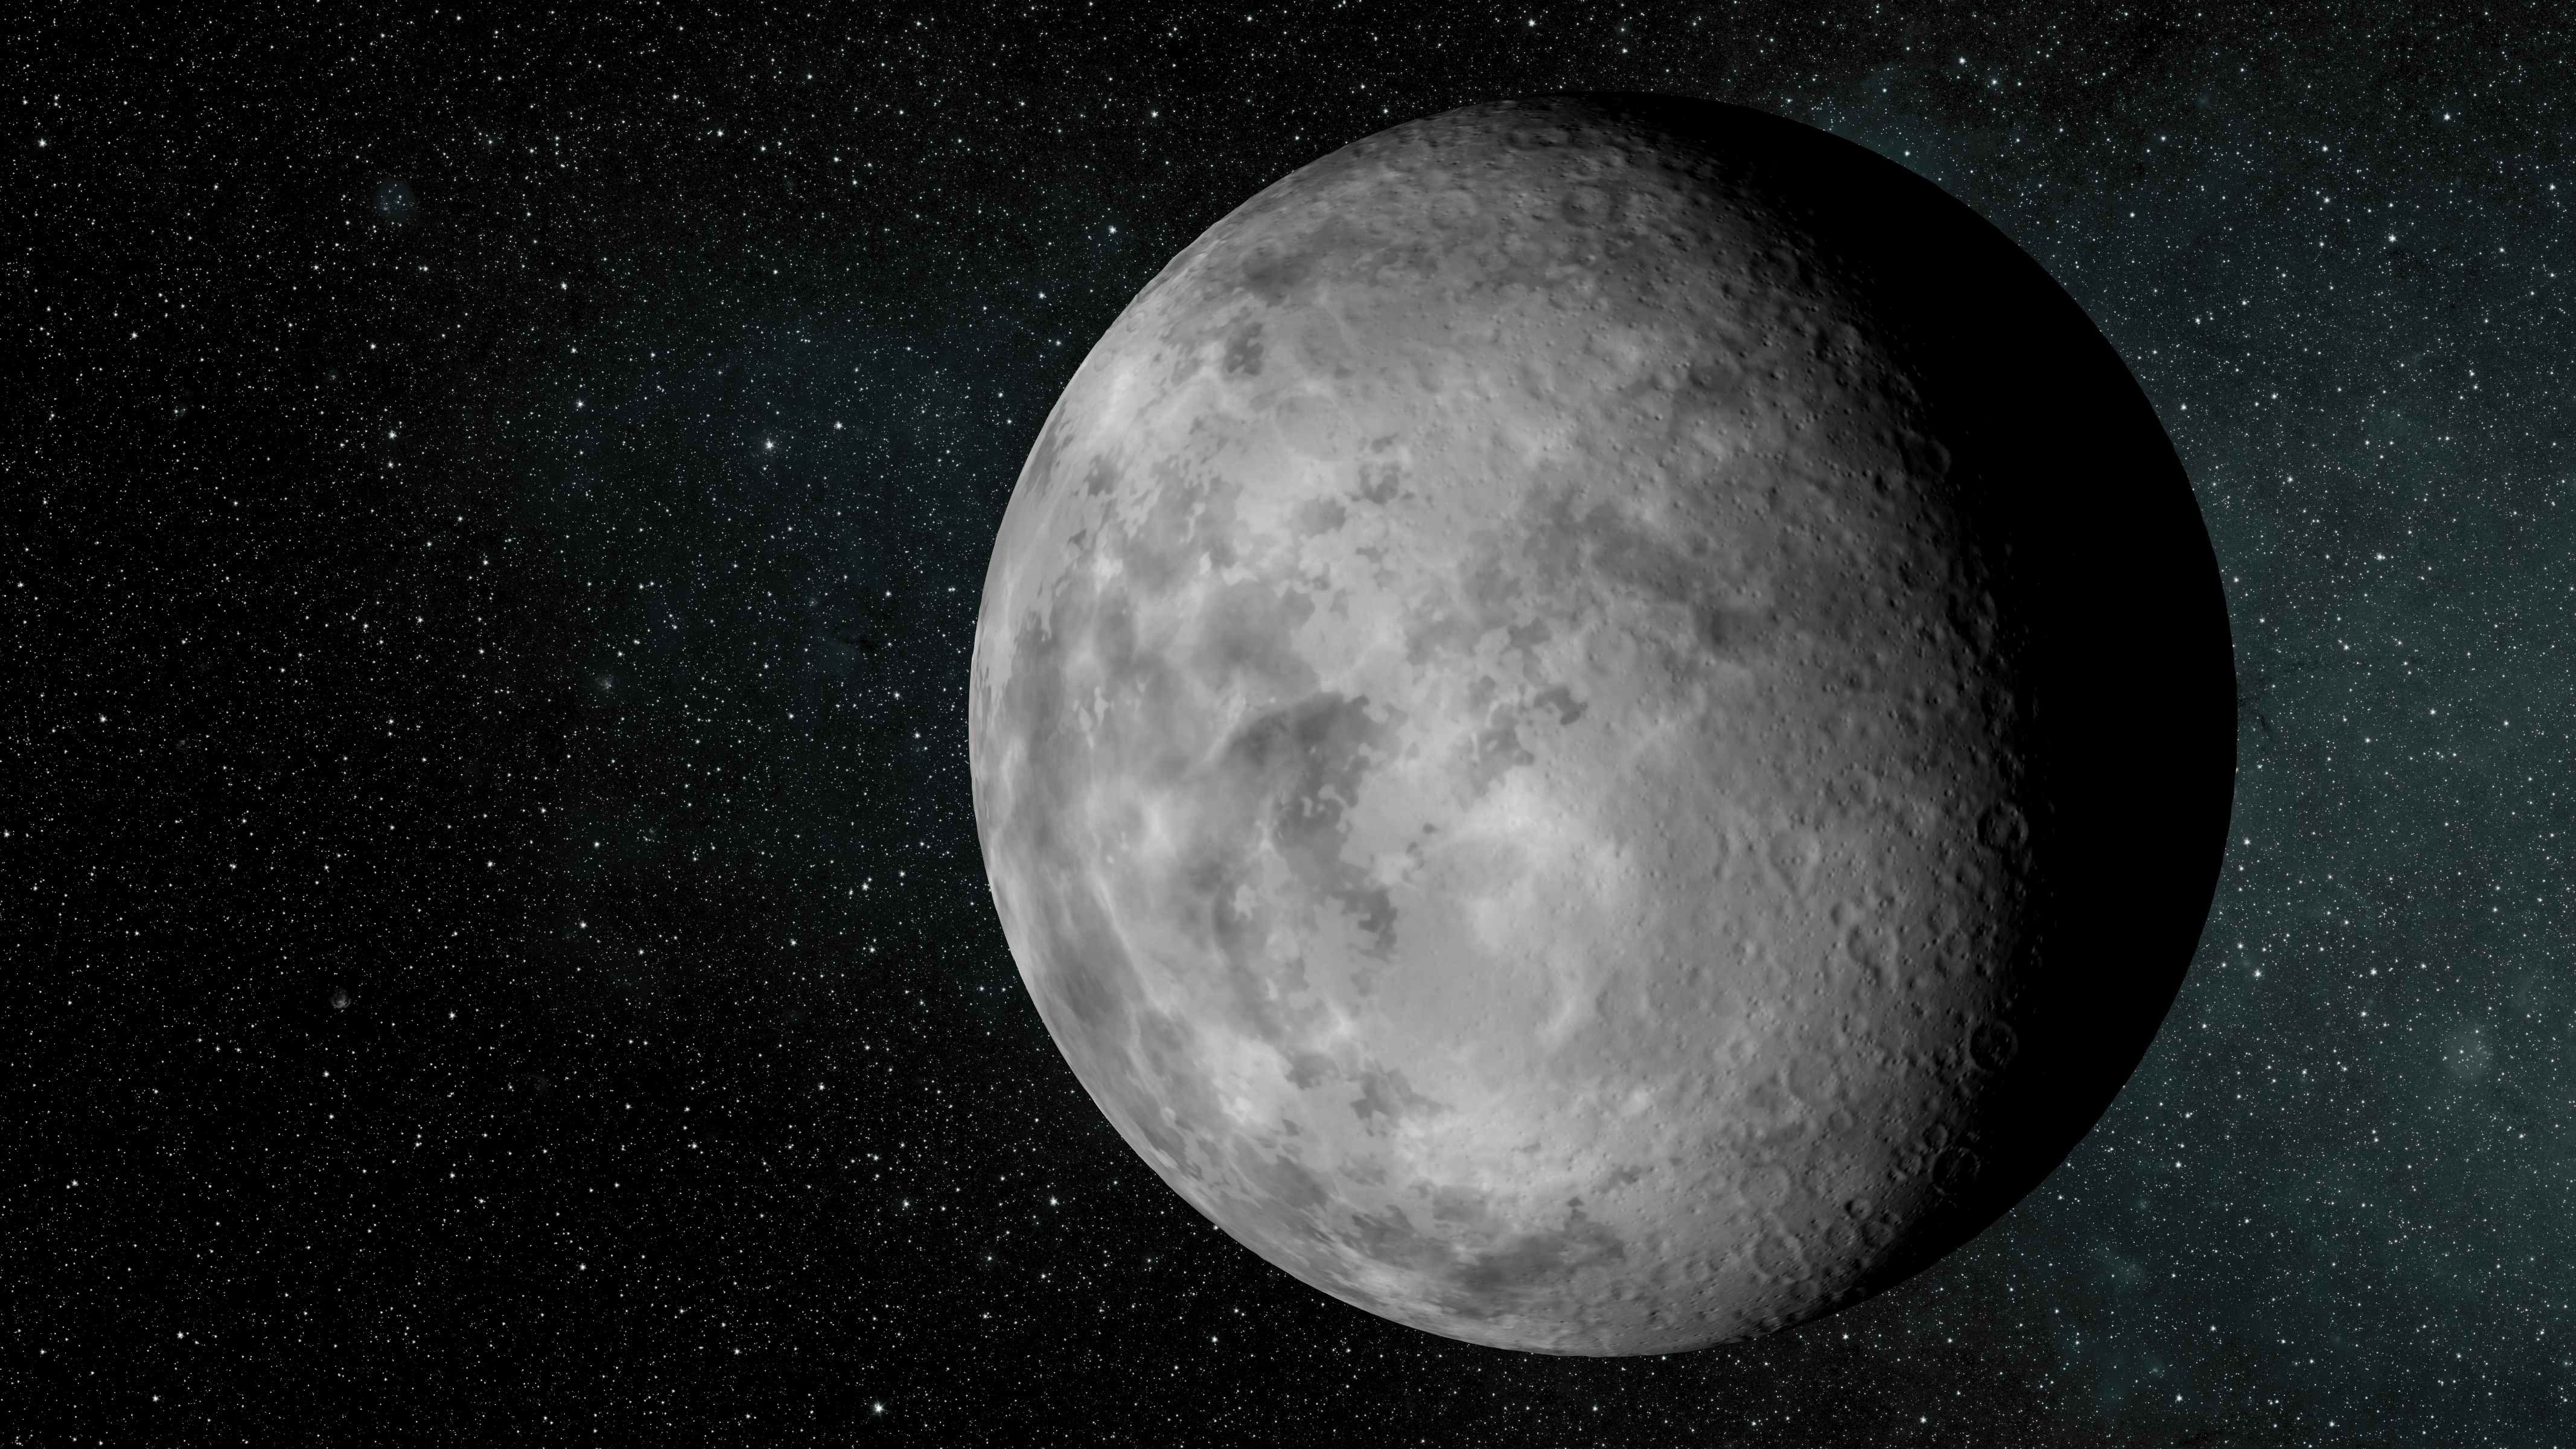 nasa planet pictures of black - photo #9